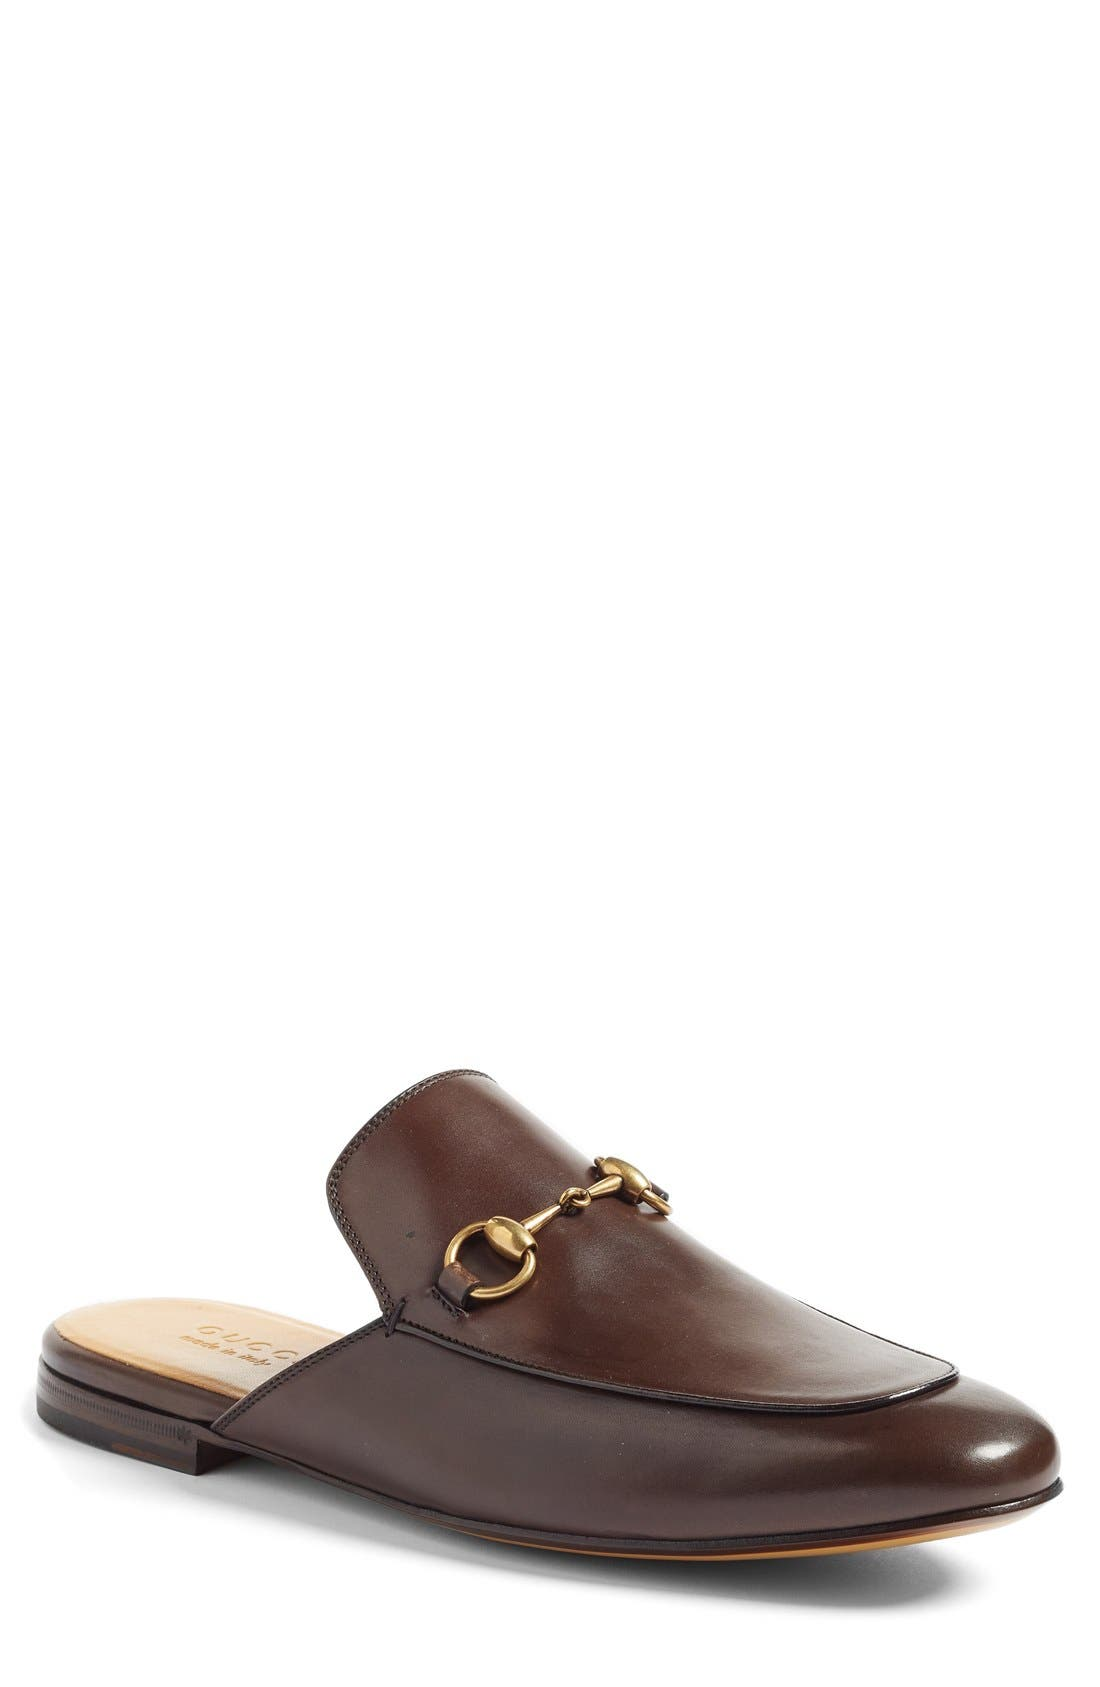 Straw Kings Slipper,                             Main thumbnail 1, color,                             BROWN LEATHER